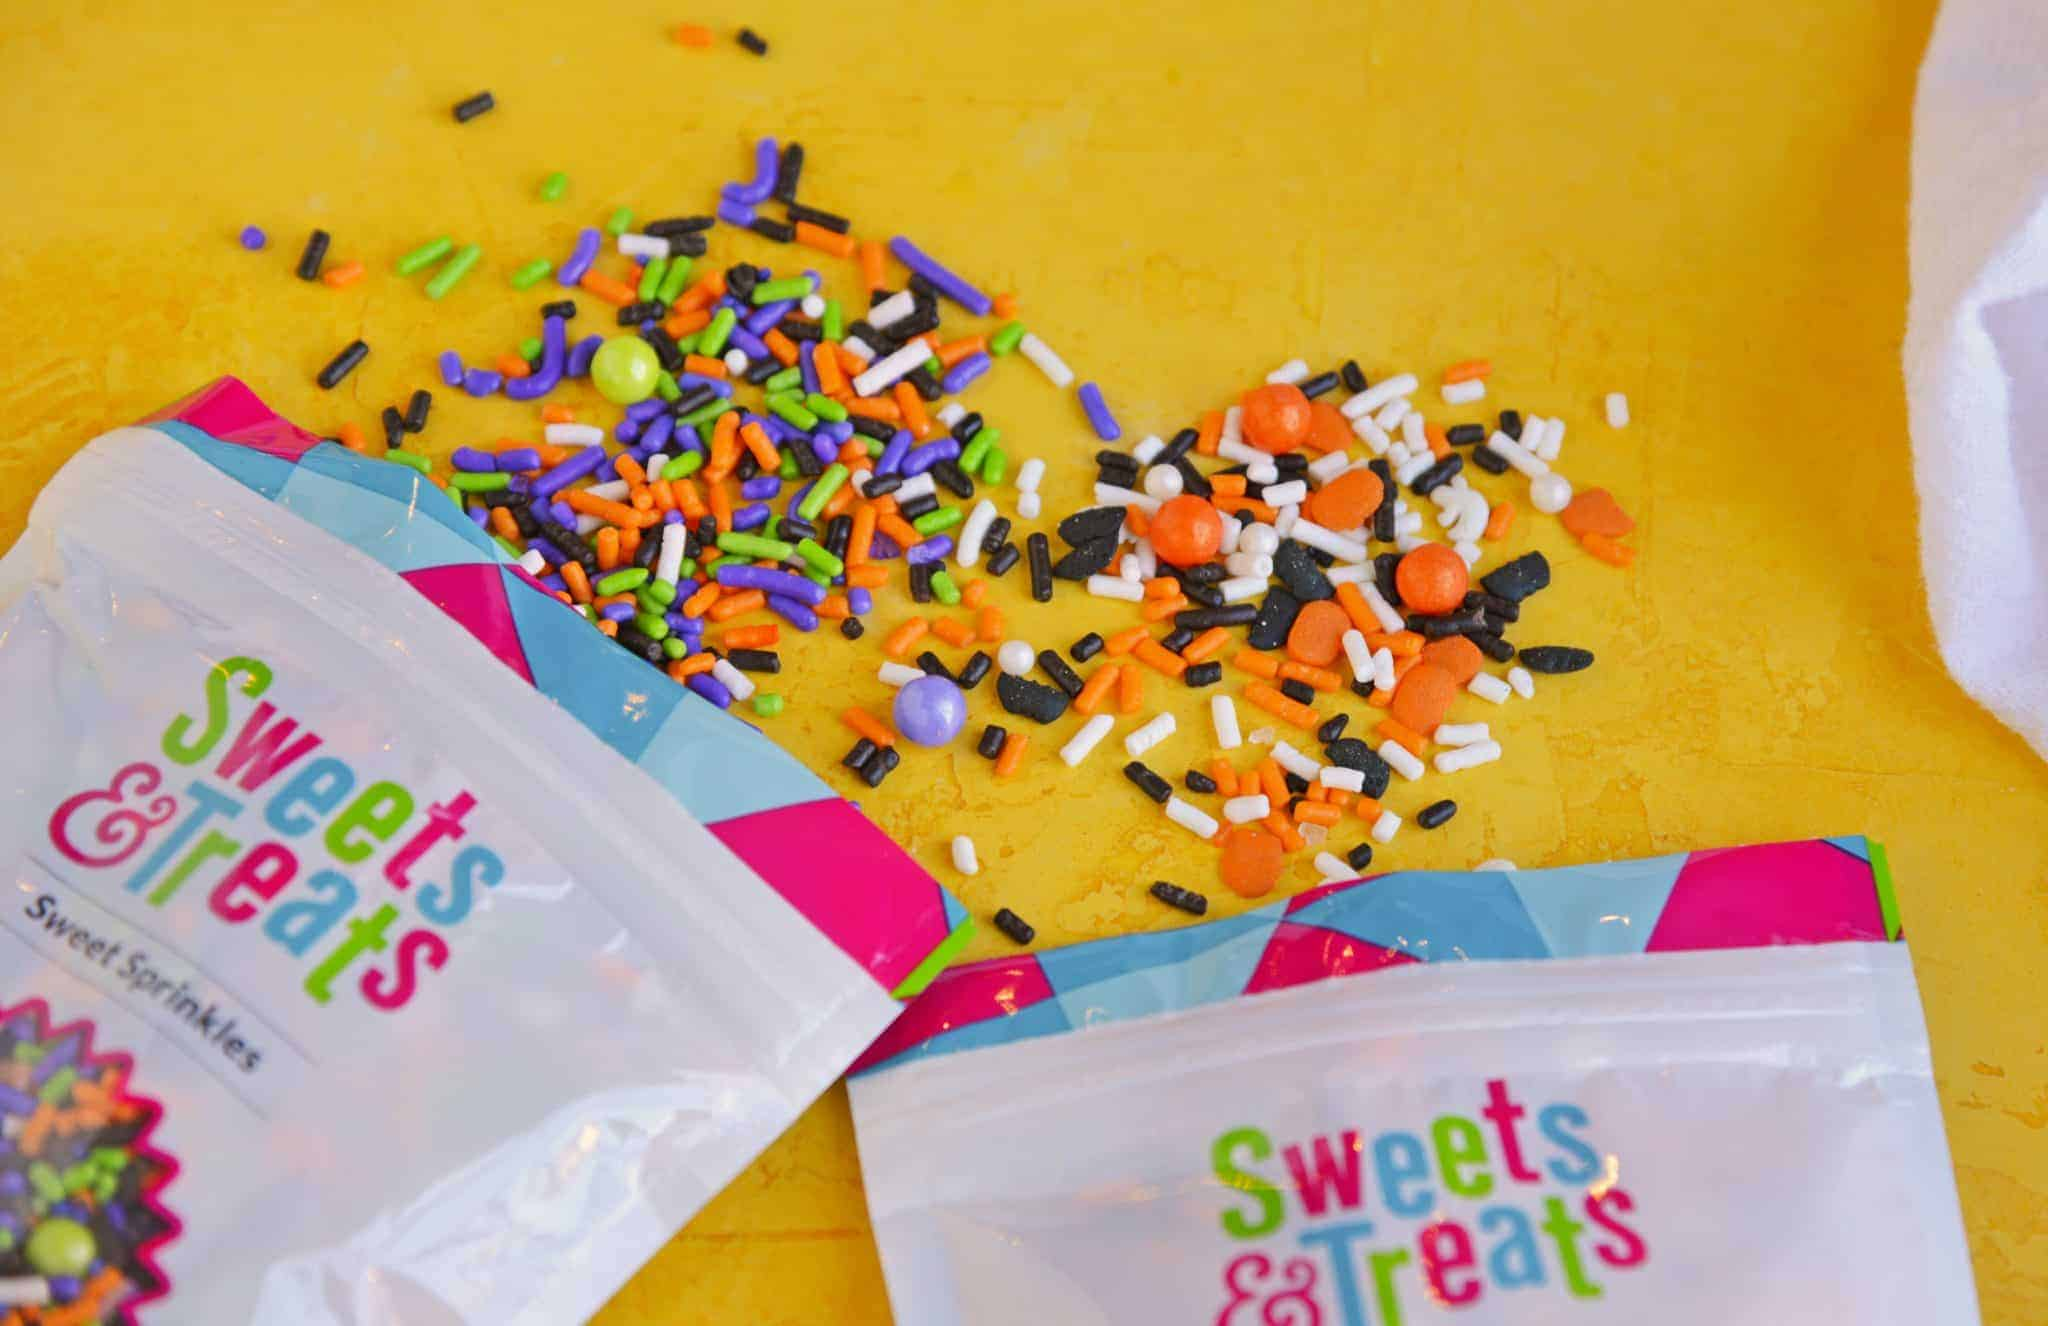 Sweets and treats Sprinkles